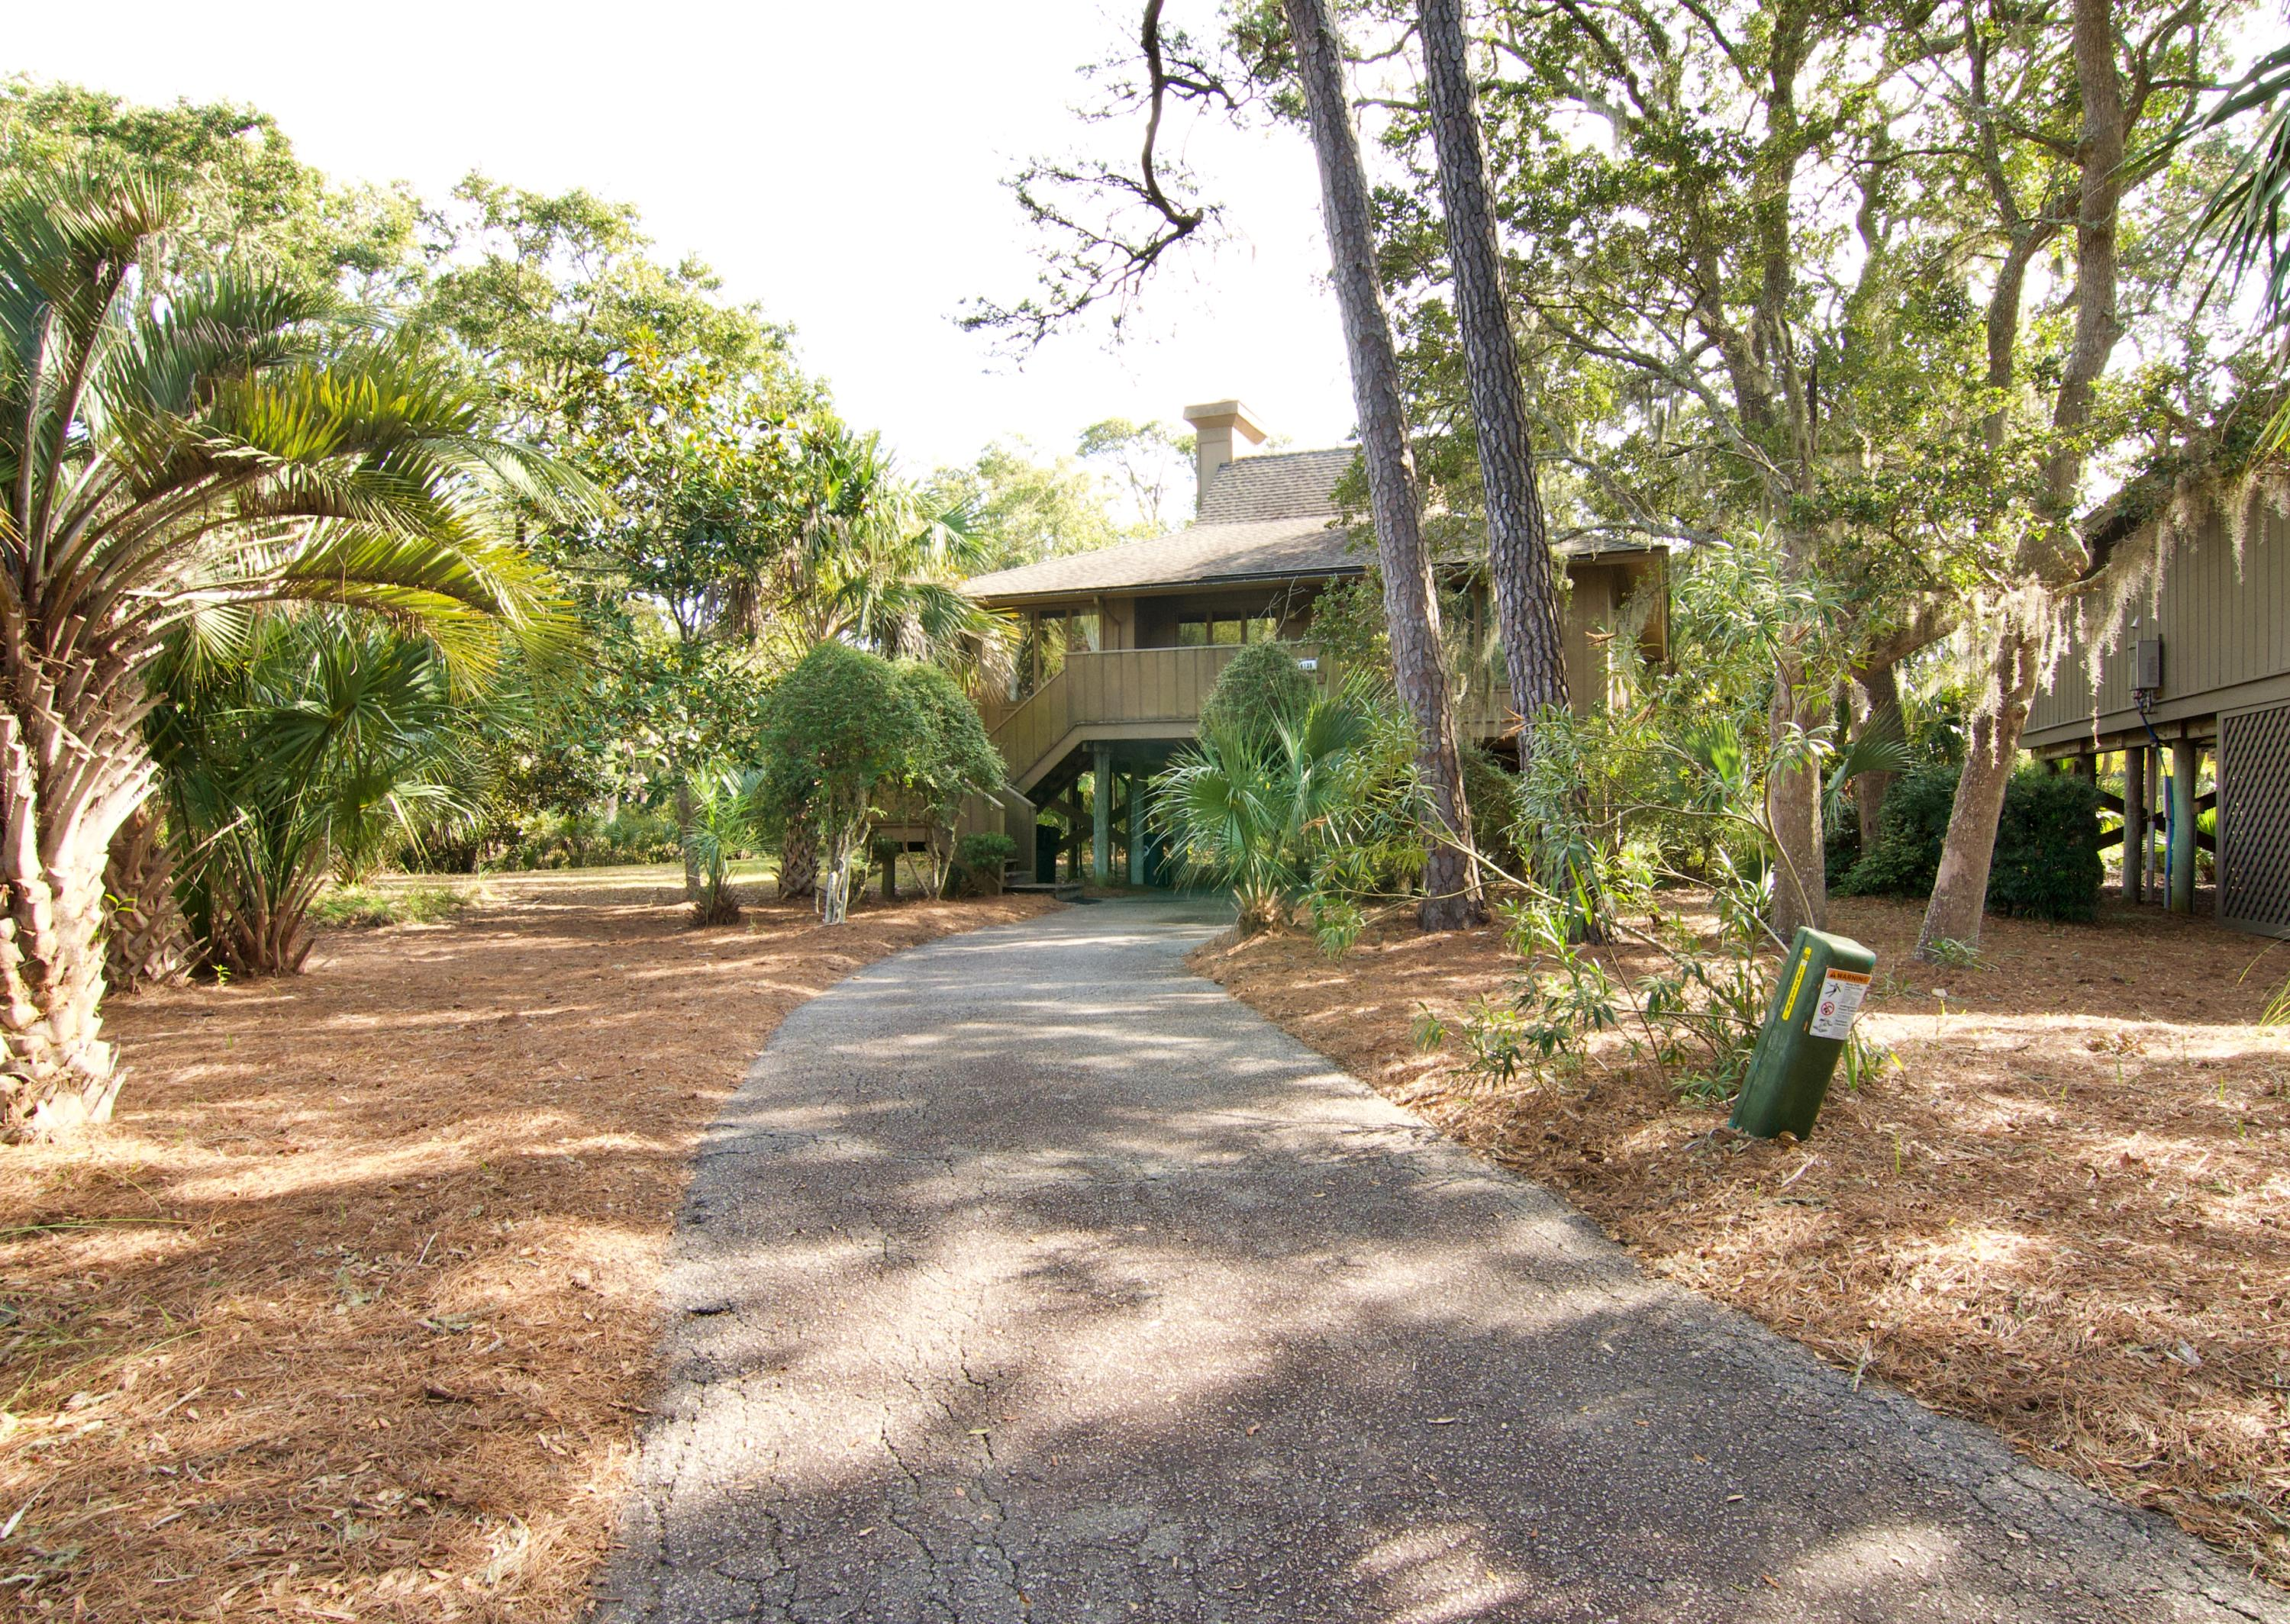 4136 Bulrush Lane Kiawah Island $580,000.00